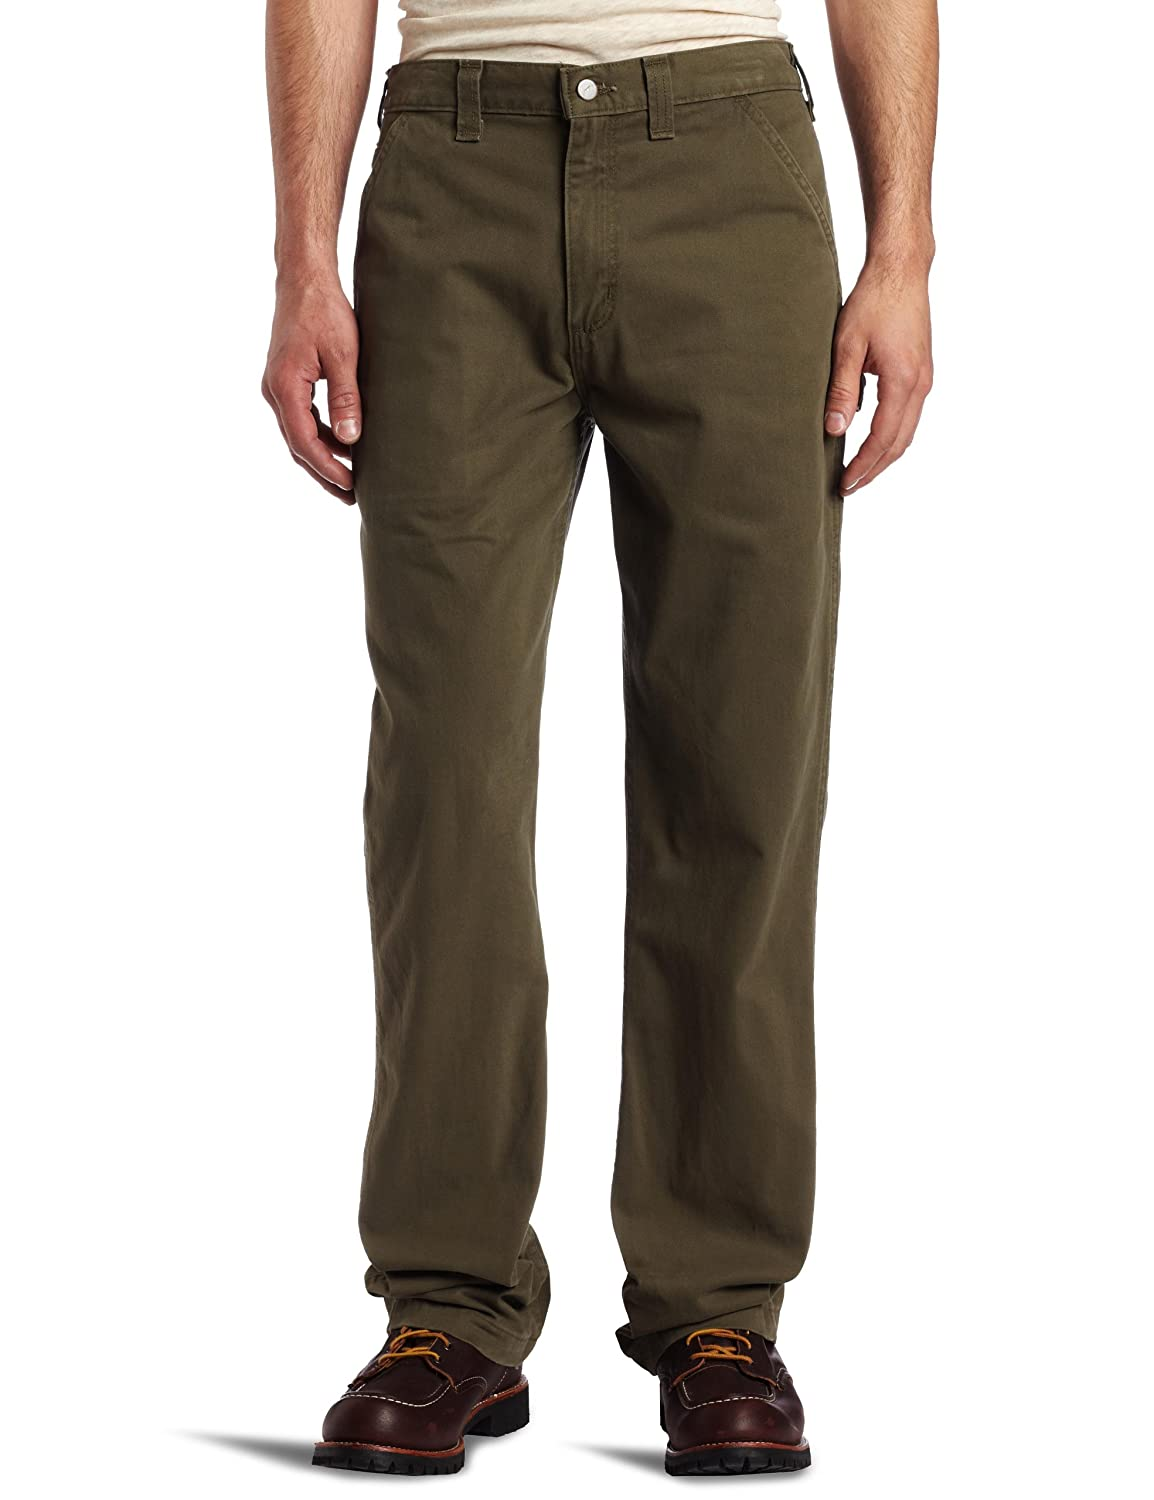 b70e72d4a41d4 Carhartt Men's Relaxed-Fit Washed Twill Dungaree Pant at Amazon Men's  Clothing store: Casual Pants